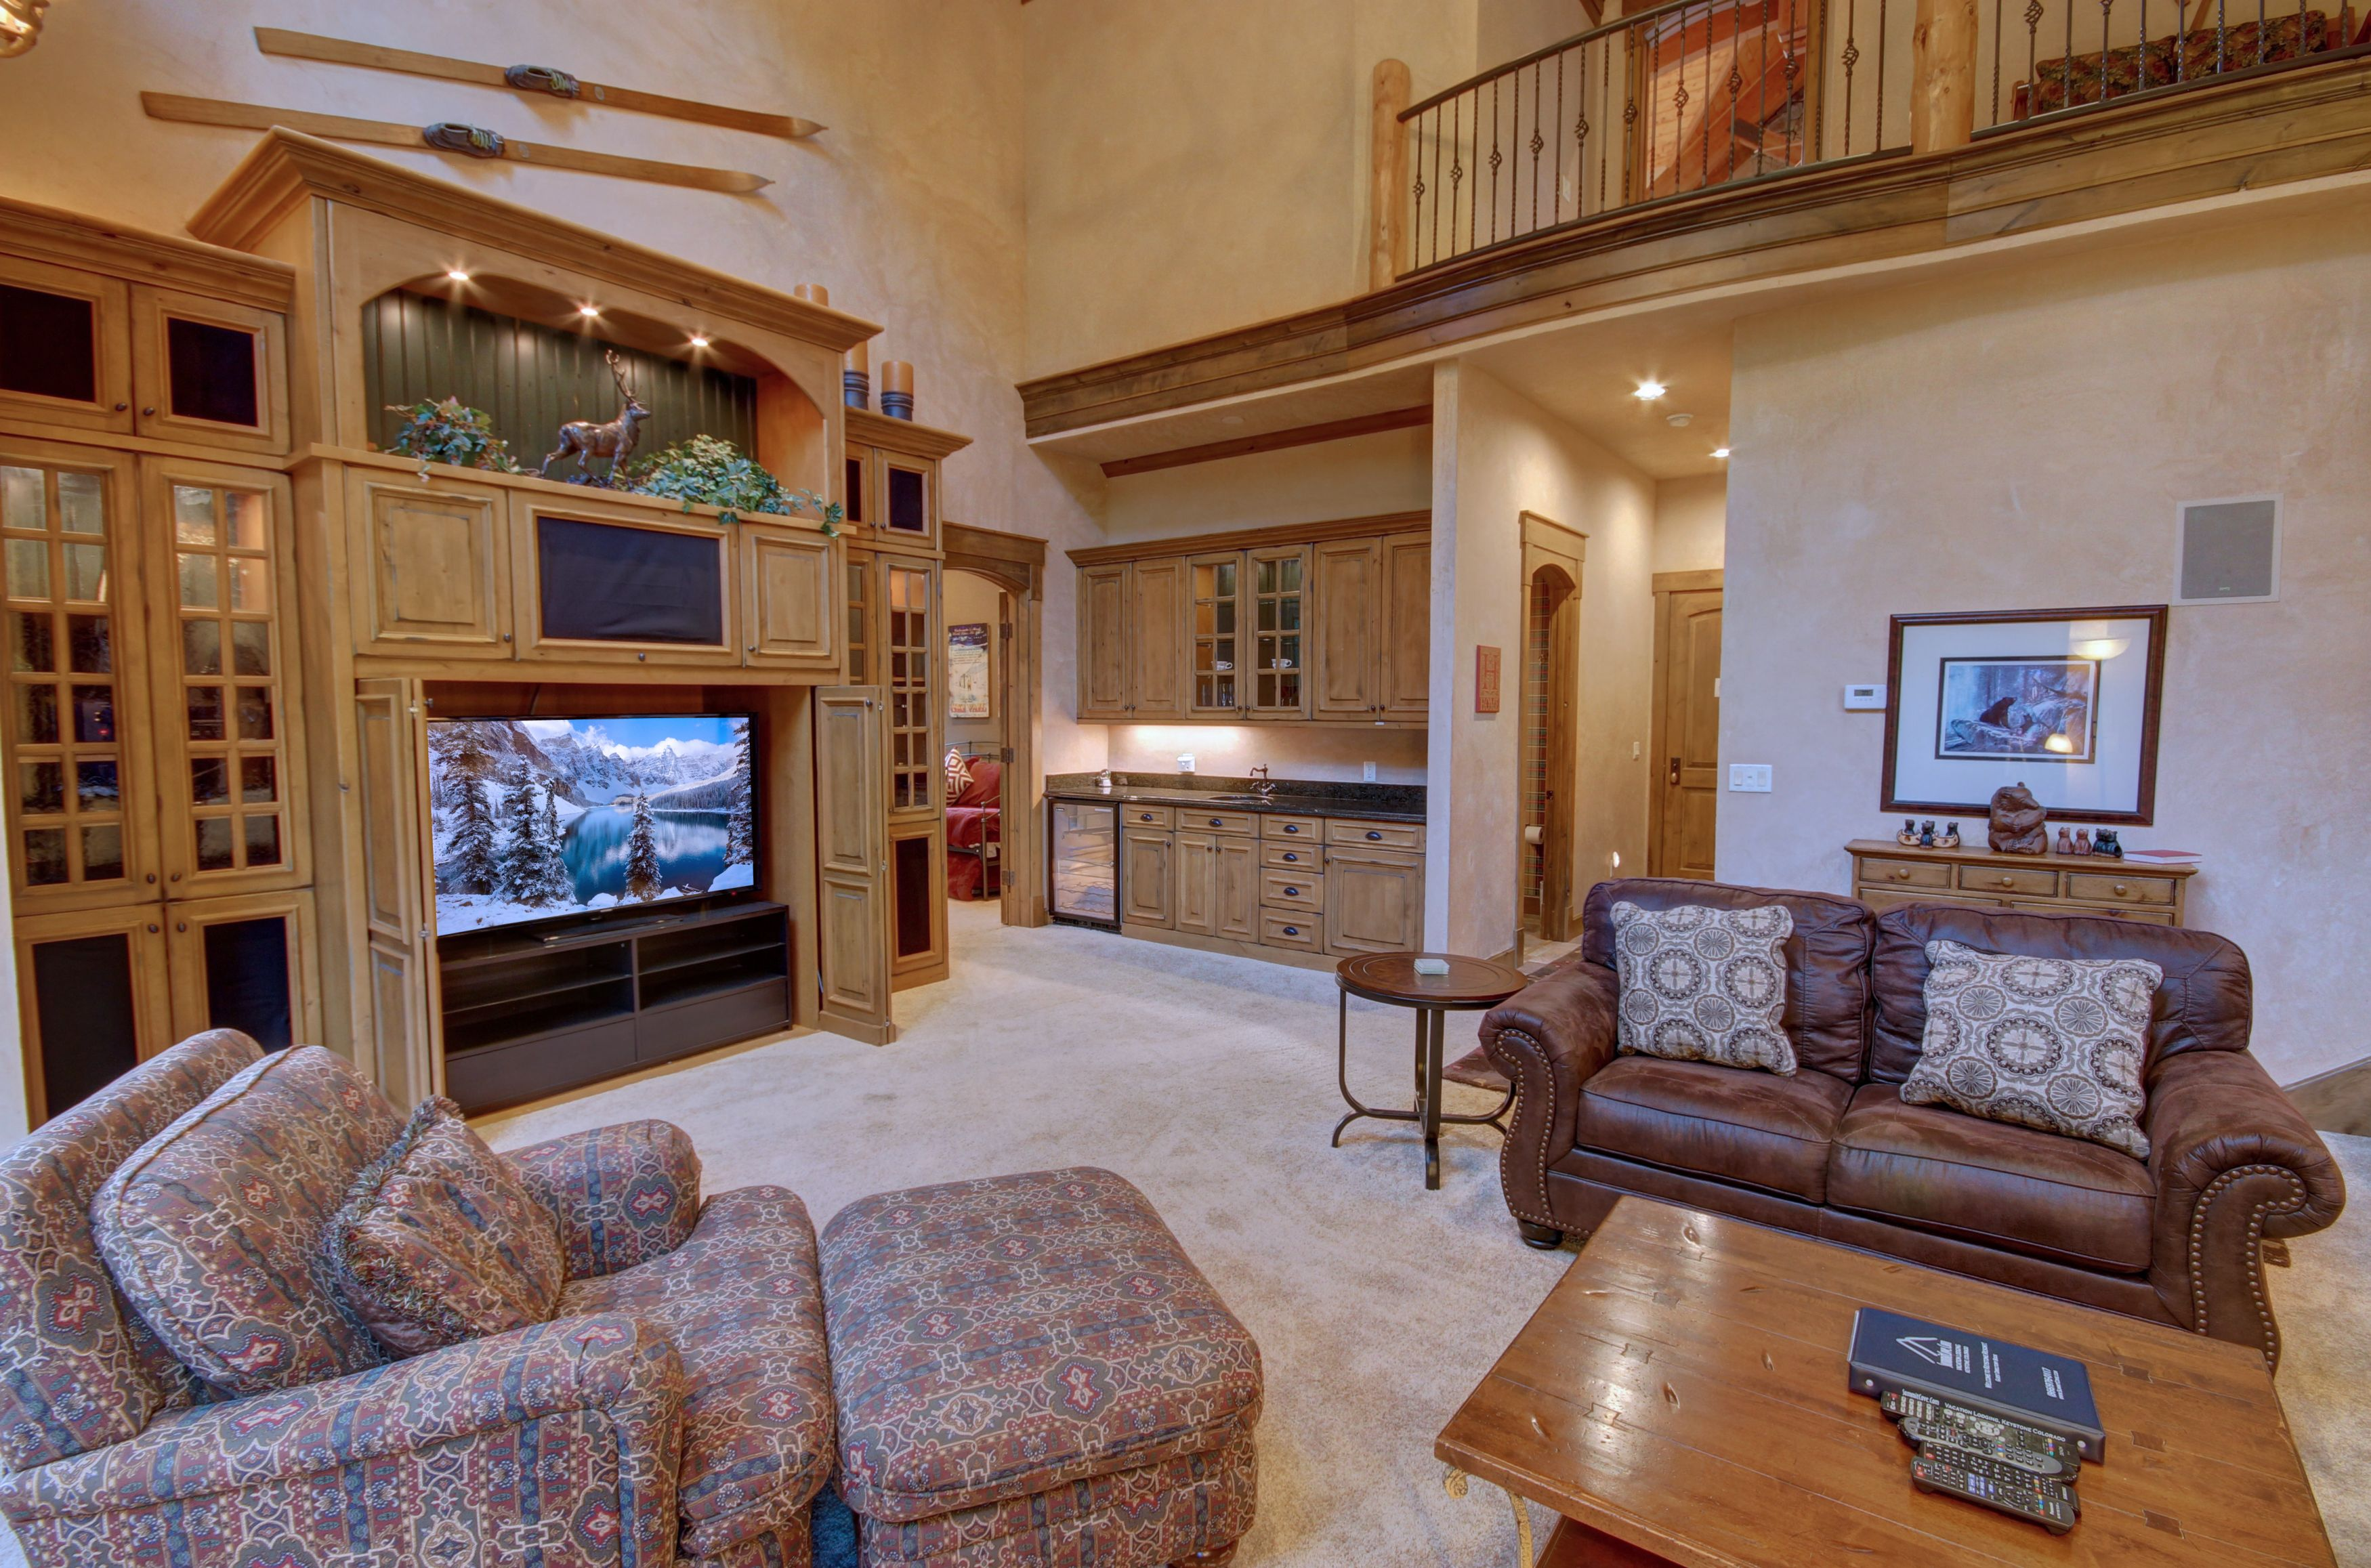 living room with comfy couches and relaxing tv